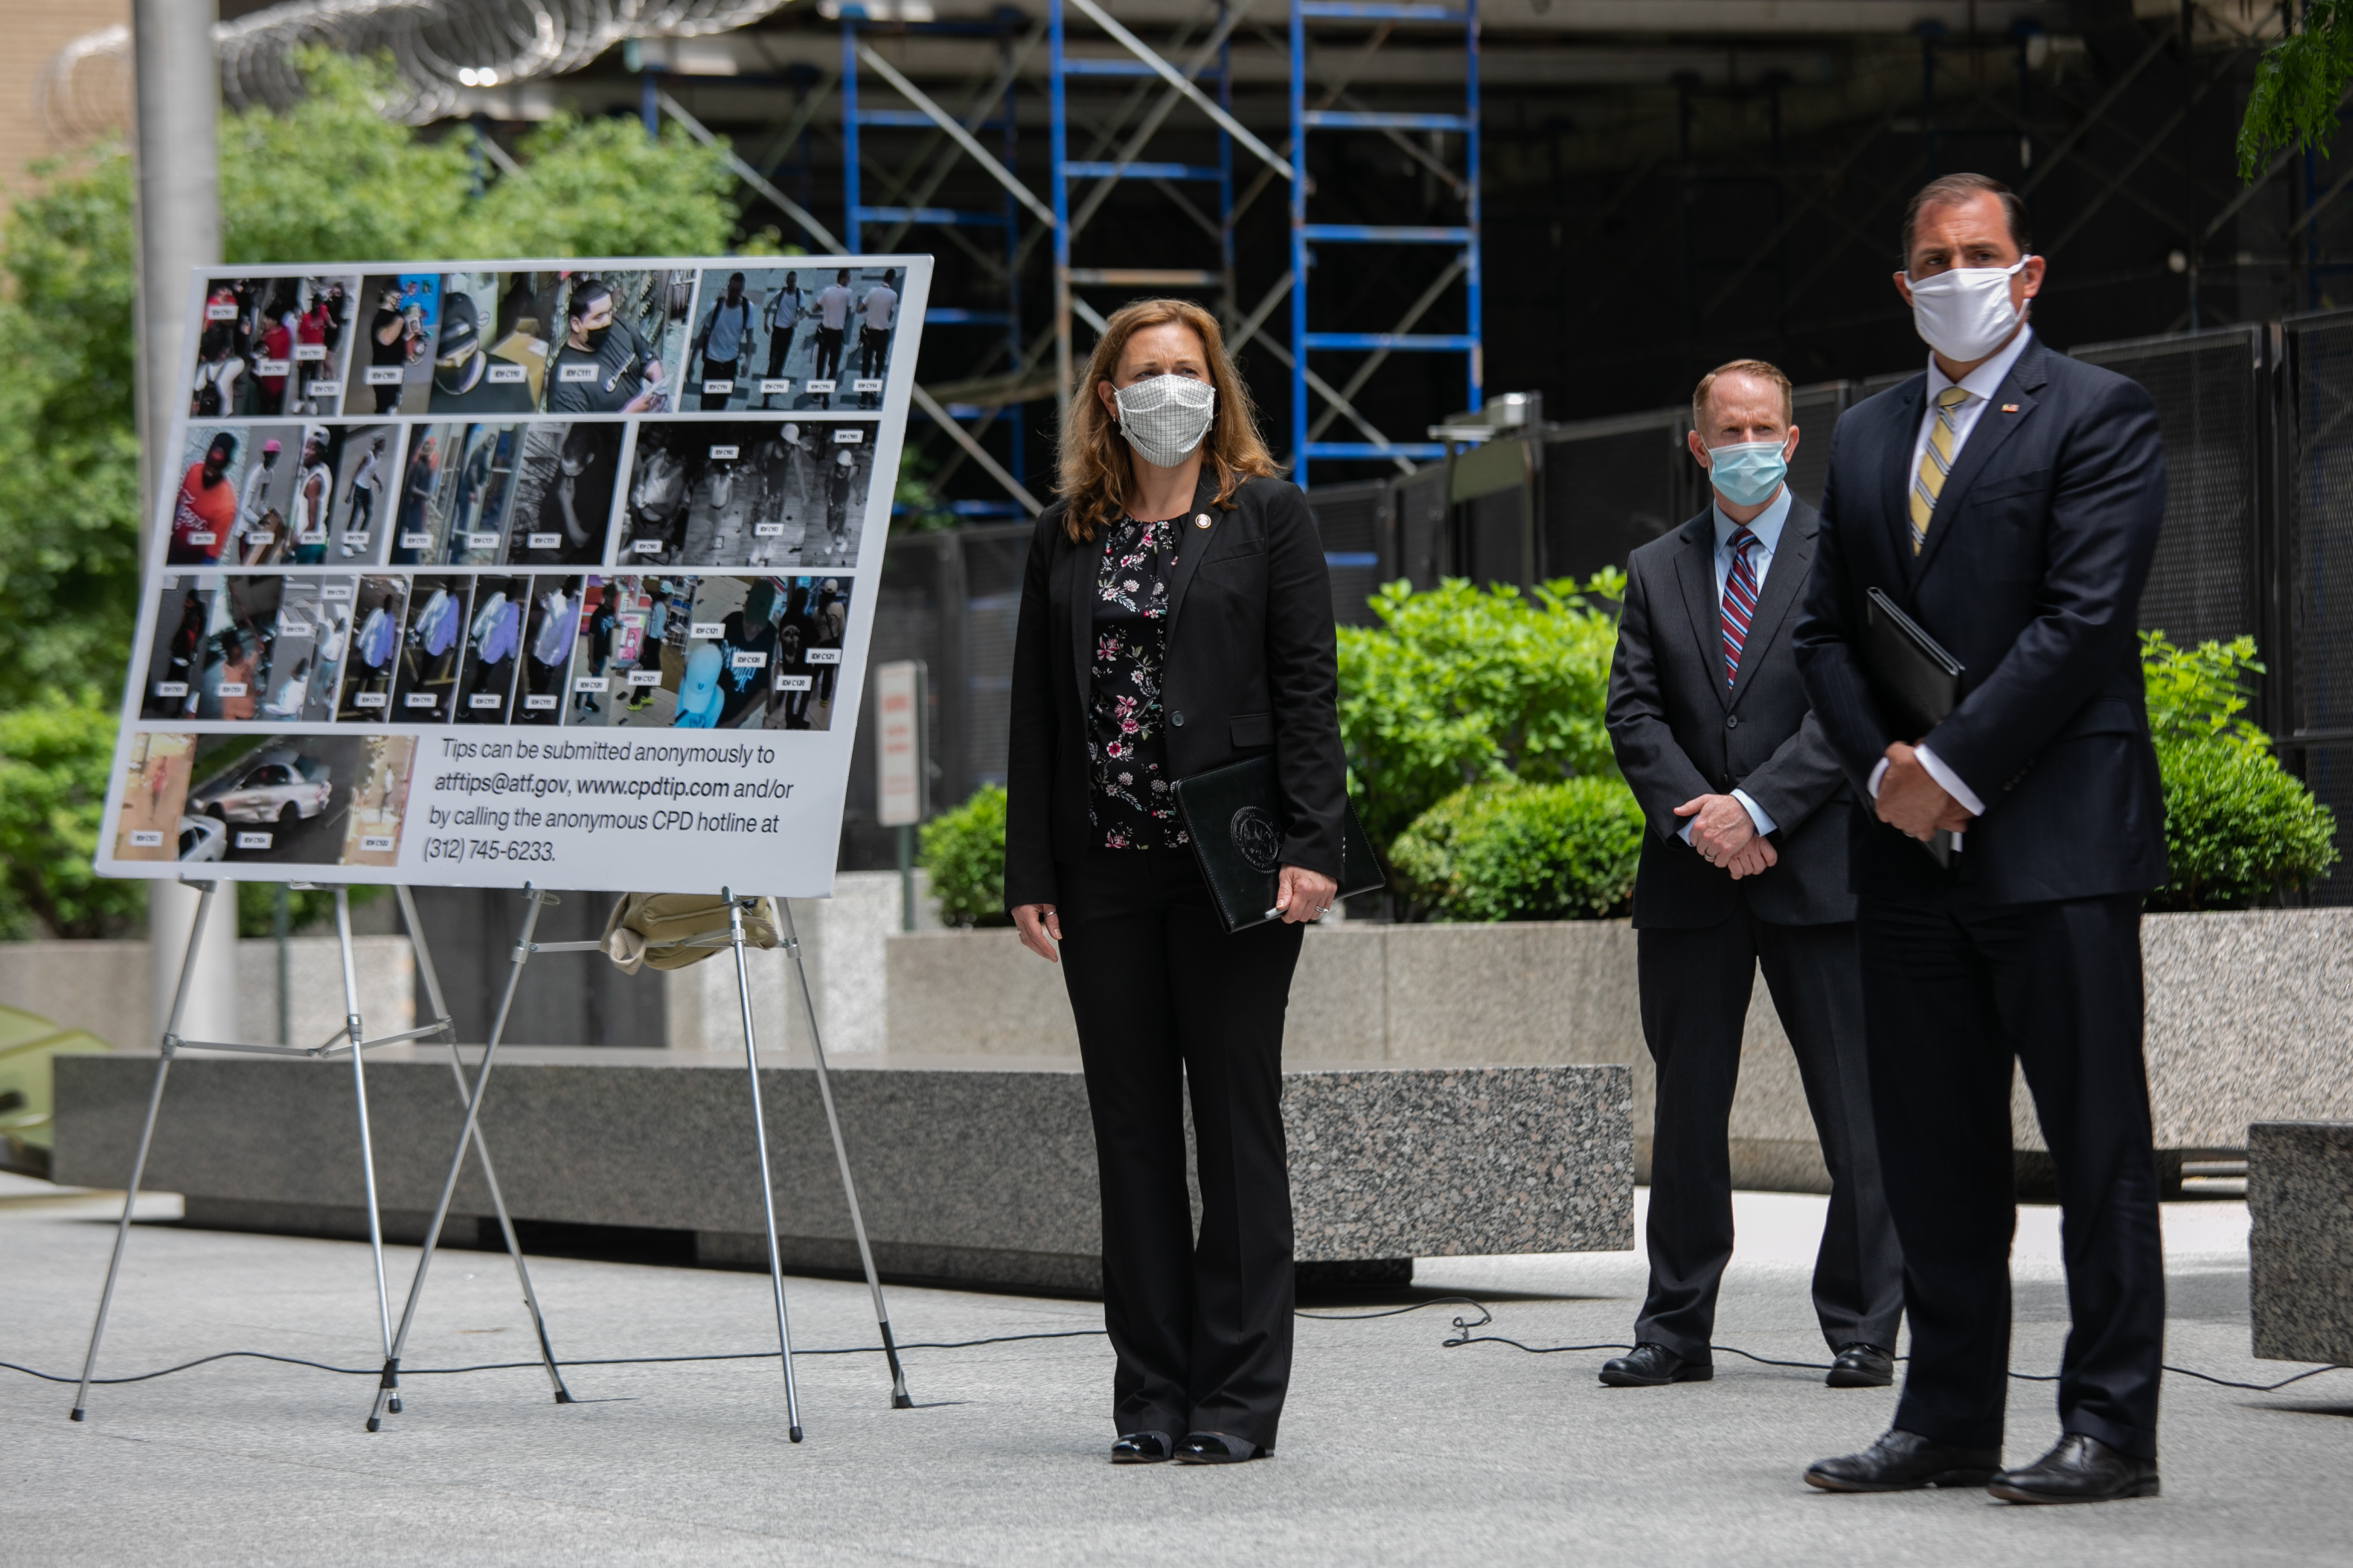 Kristen deTineo, special agent in charge of the Bureau of Alcohol, Tobacco, Firearms and Explosives and U.S. Attorney John R. Lausch, Jr., right, at a news conference outside the Dirksen Federal Building on Tuesday.